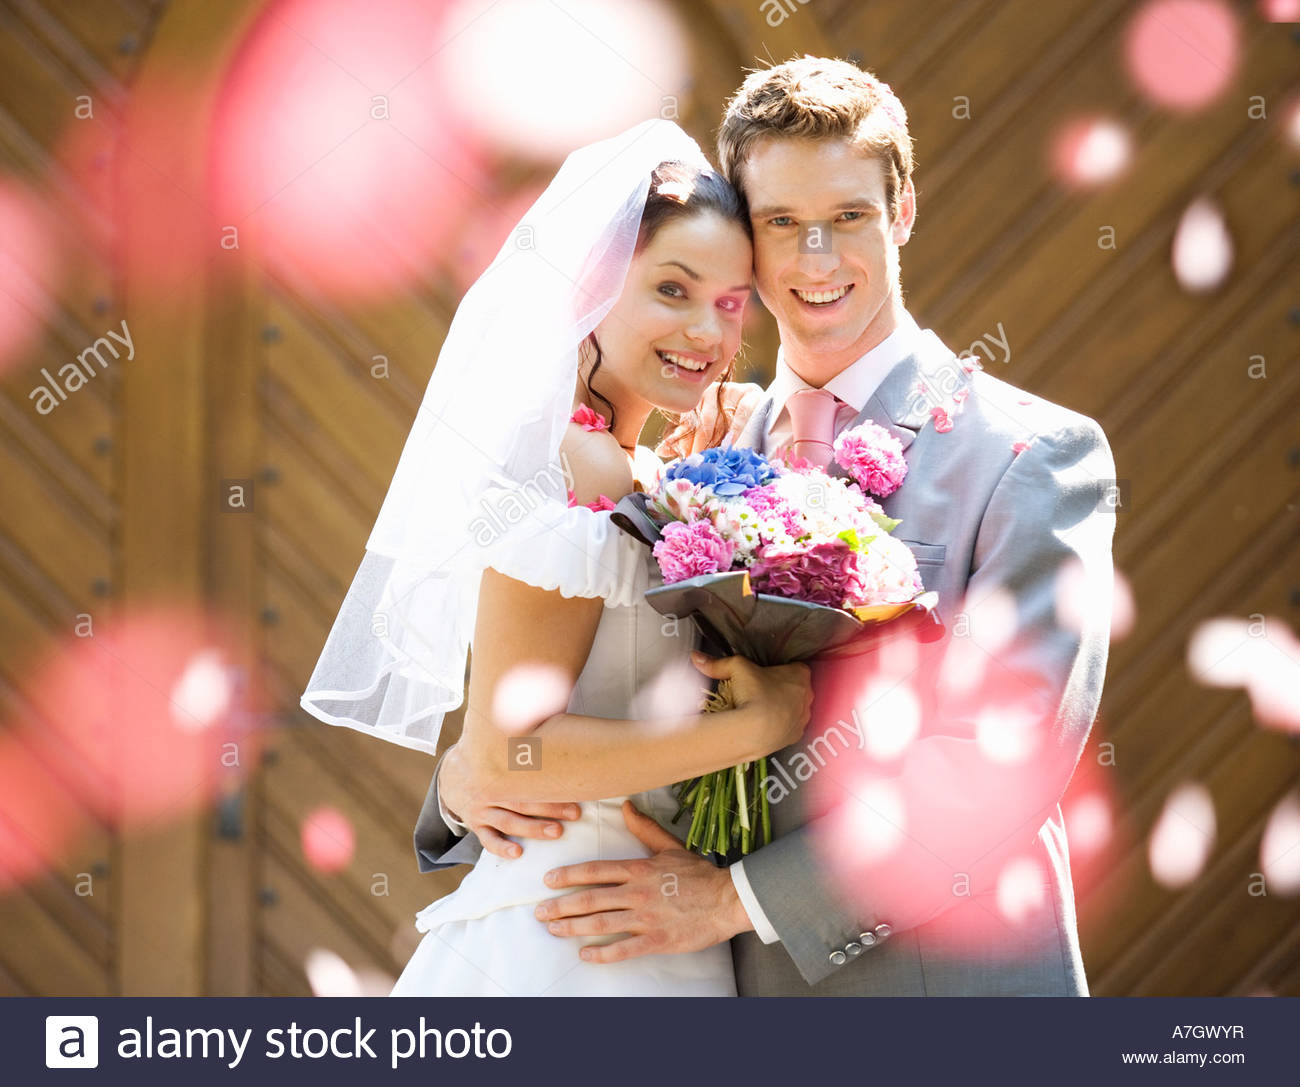 Portrait of a bride and groom - Stock Image